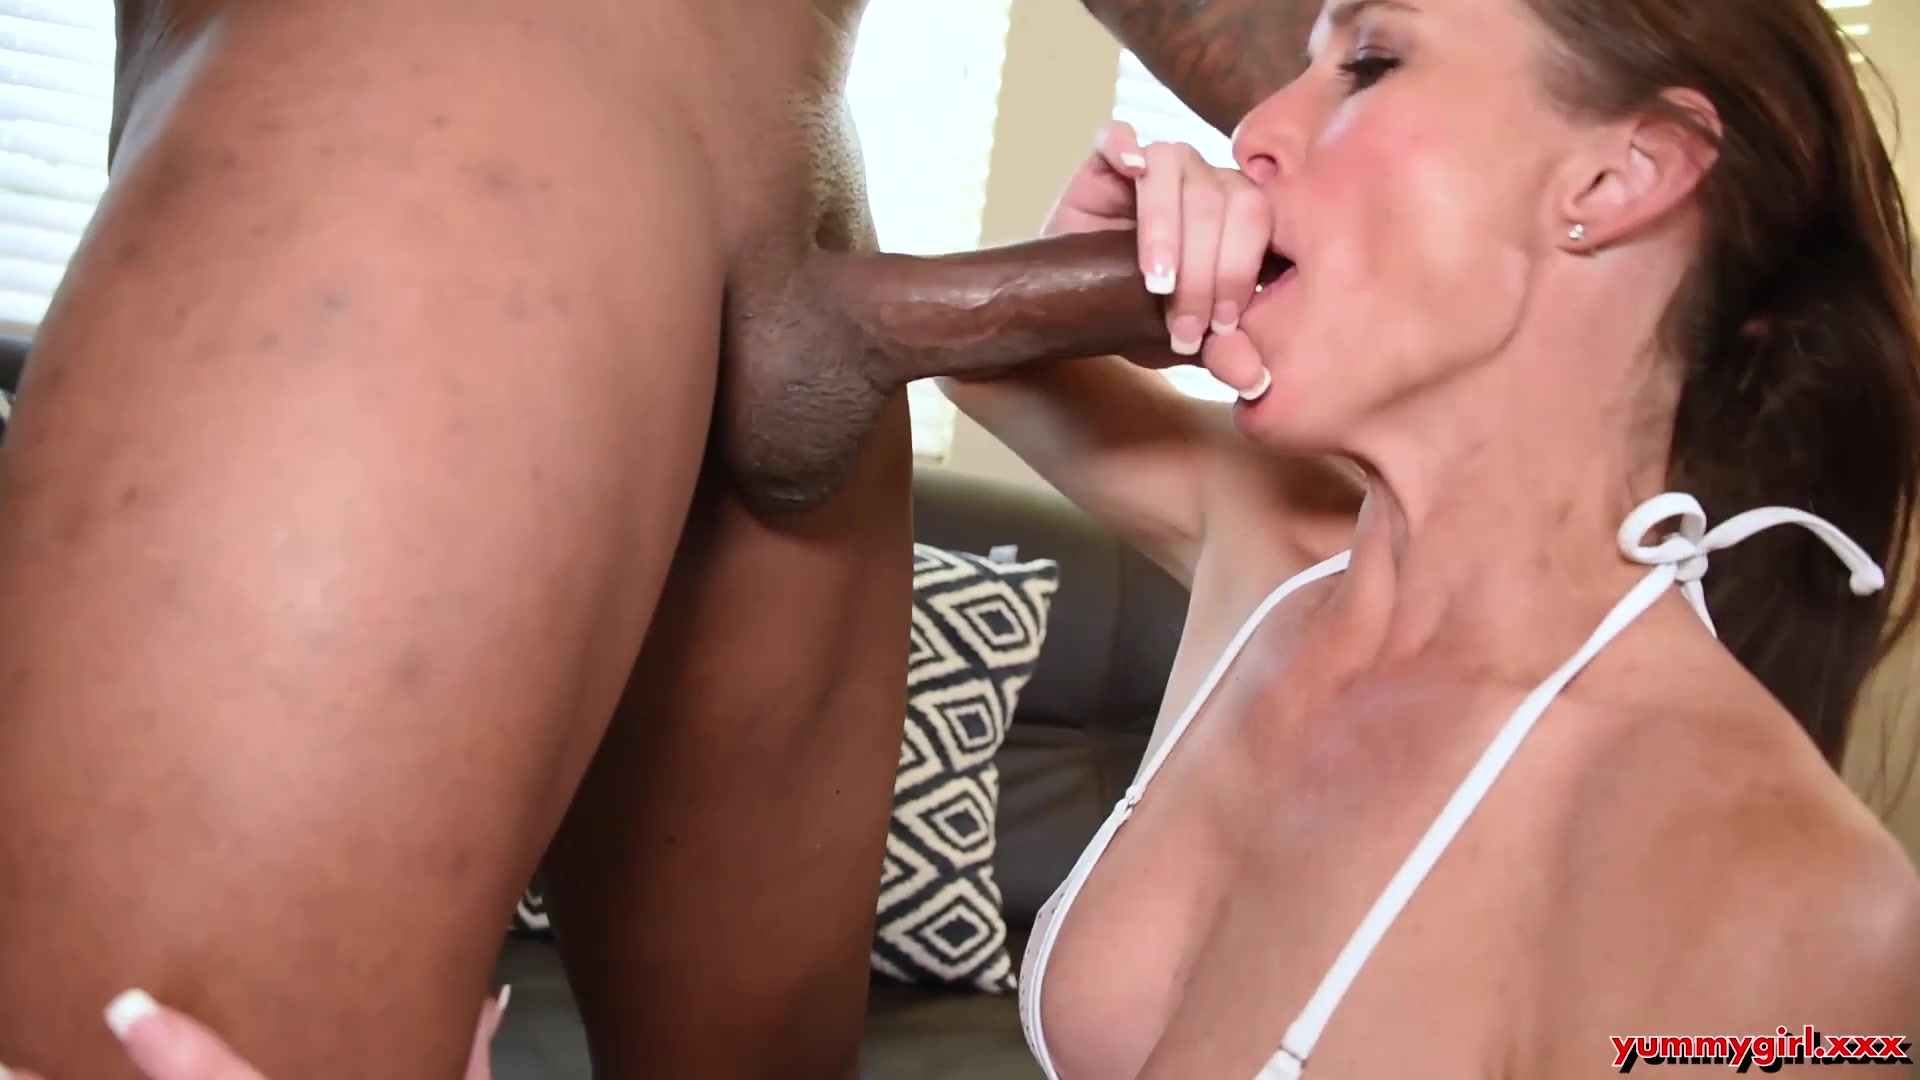 hope, you big tit ebony spread white cock something is. will